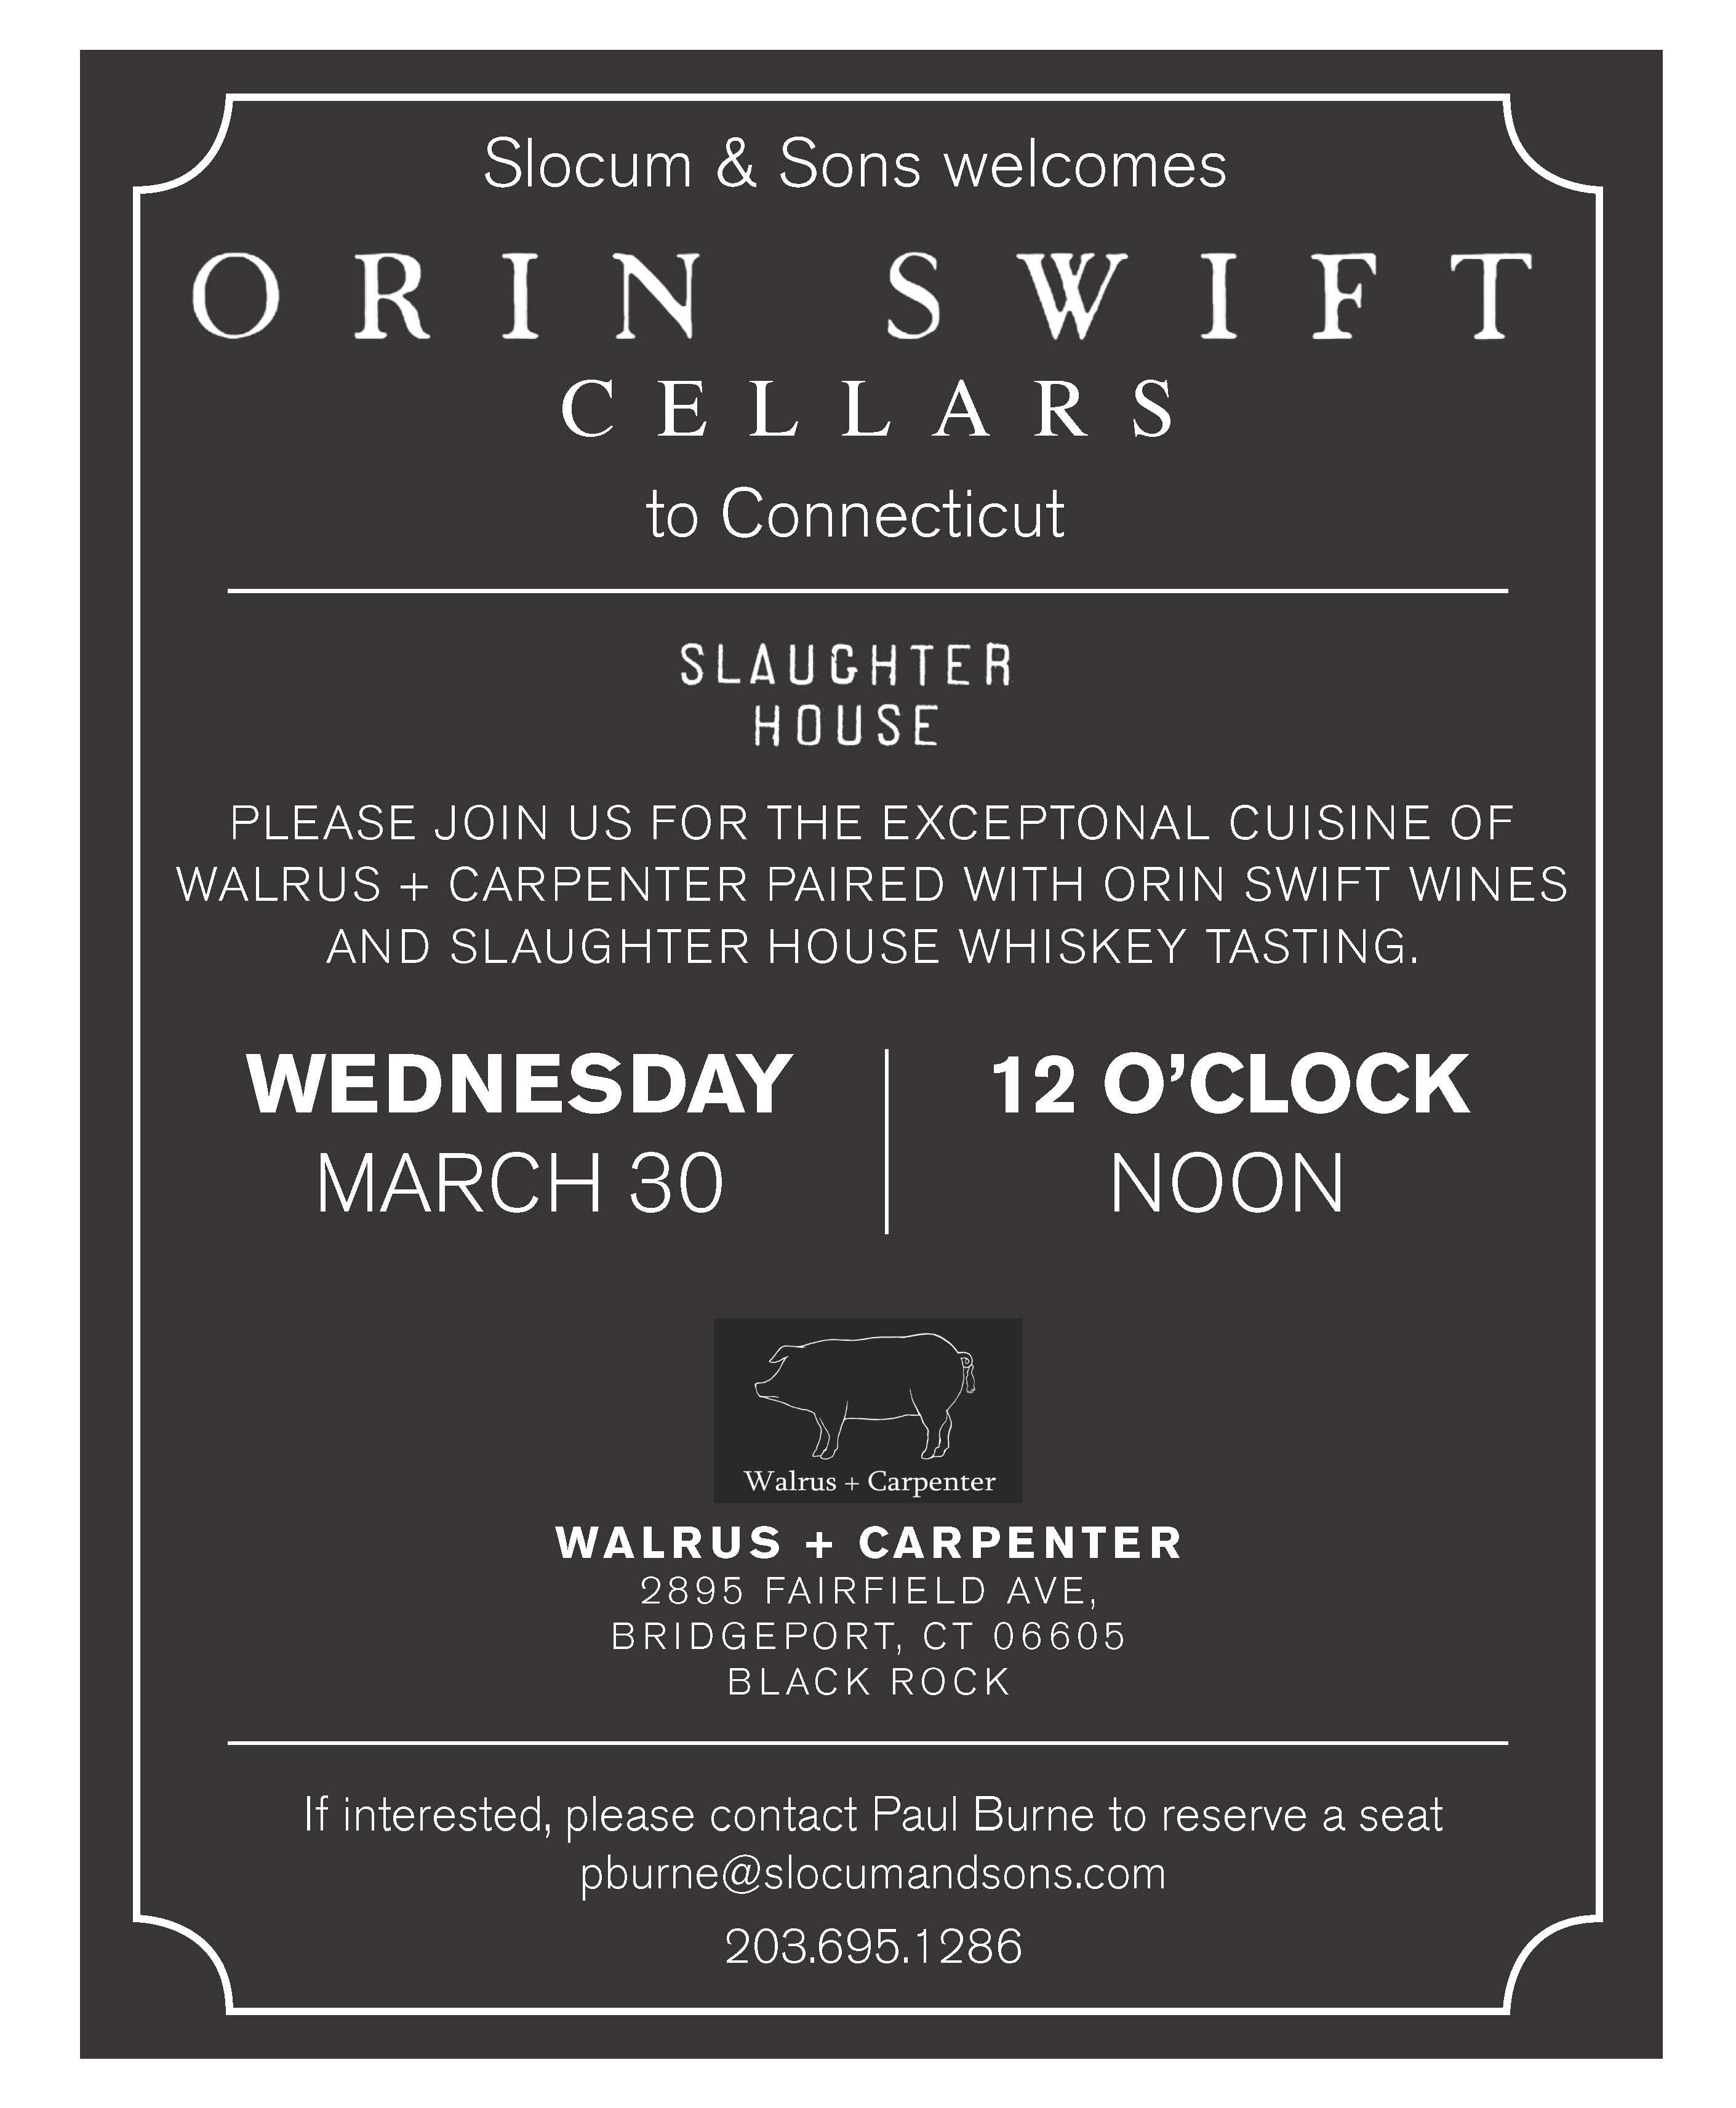 March 30, 2016: Trade Only/Slocum & Sons Welcomes Orin Swift